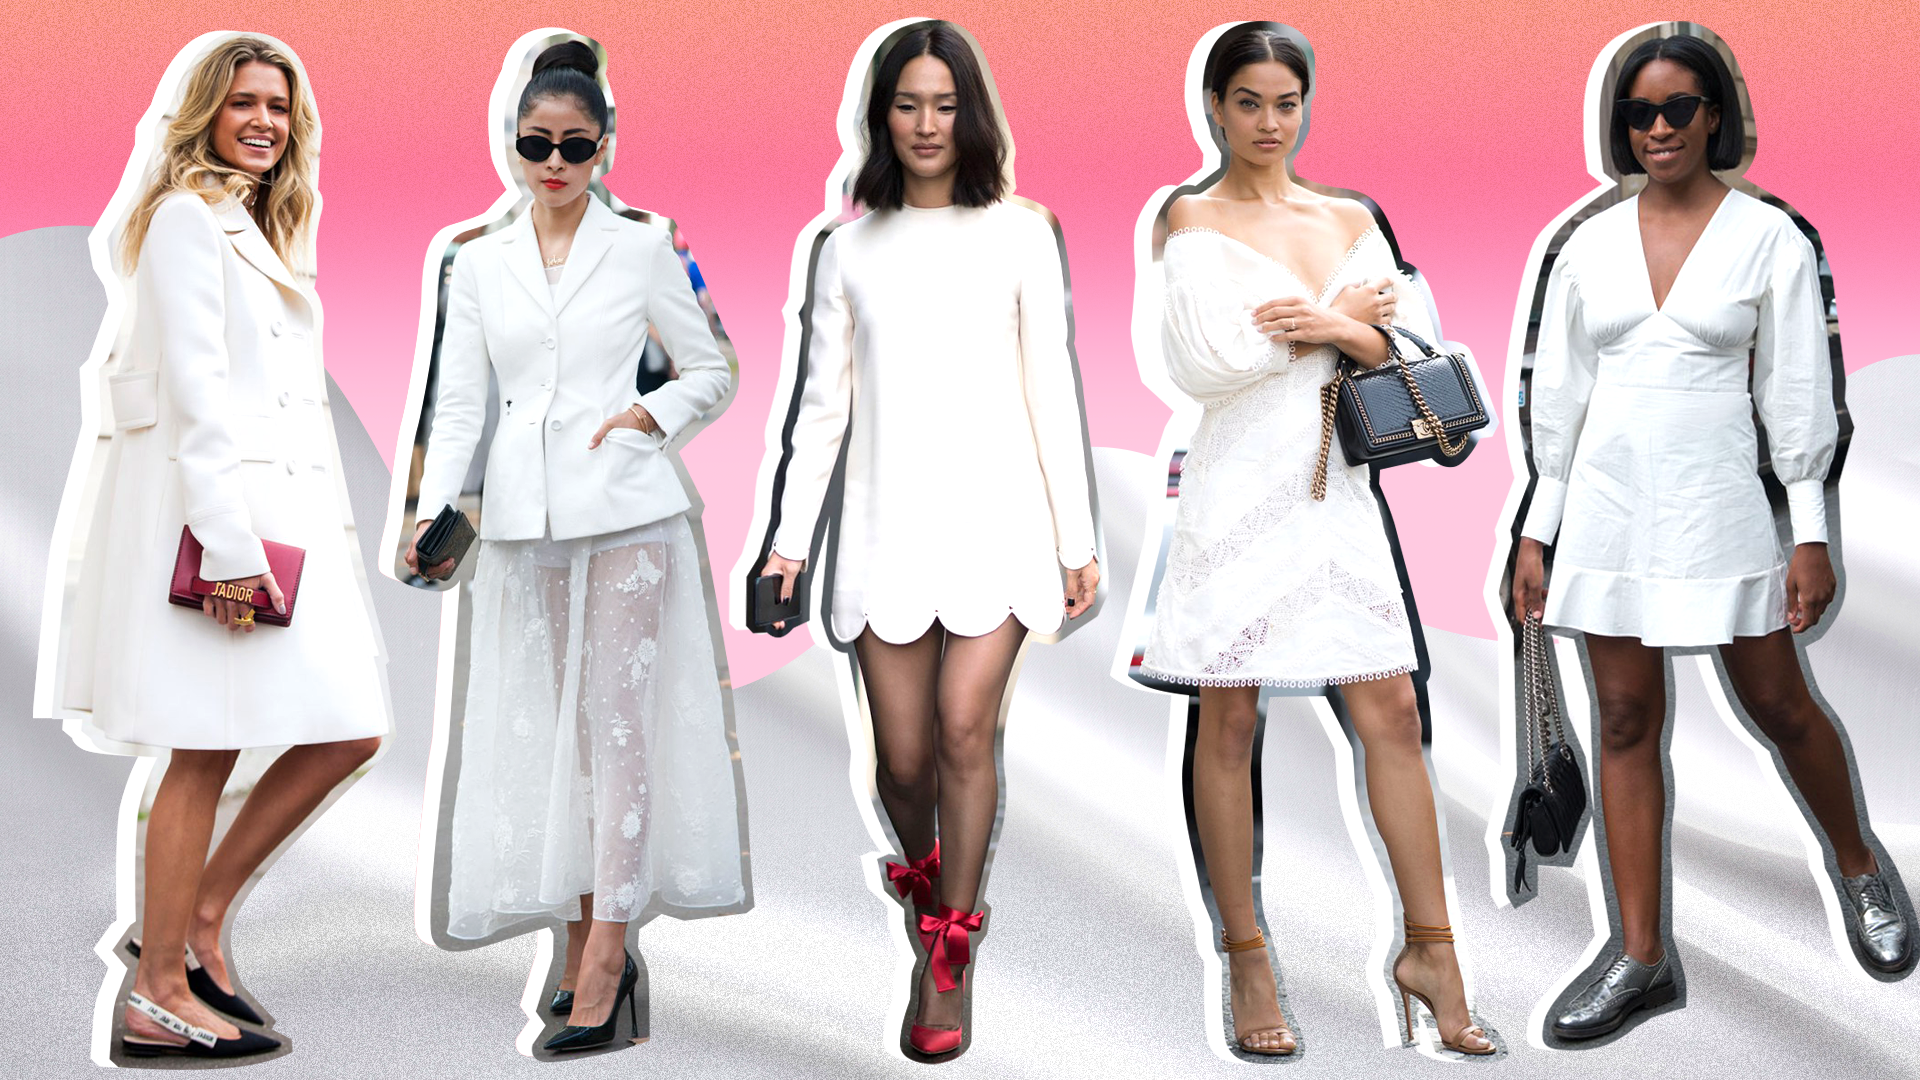 STYLECASTER | Bridal Style Guide